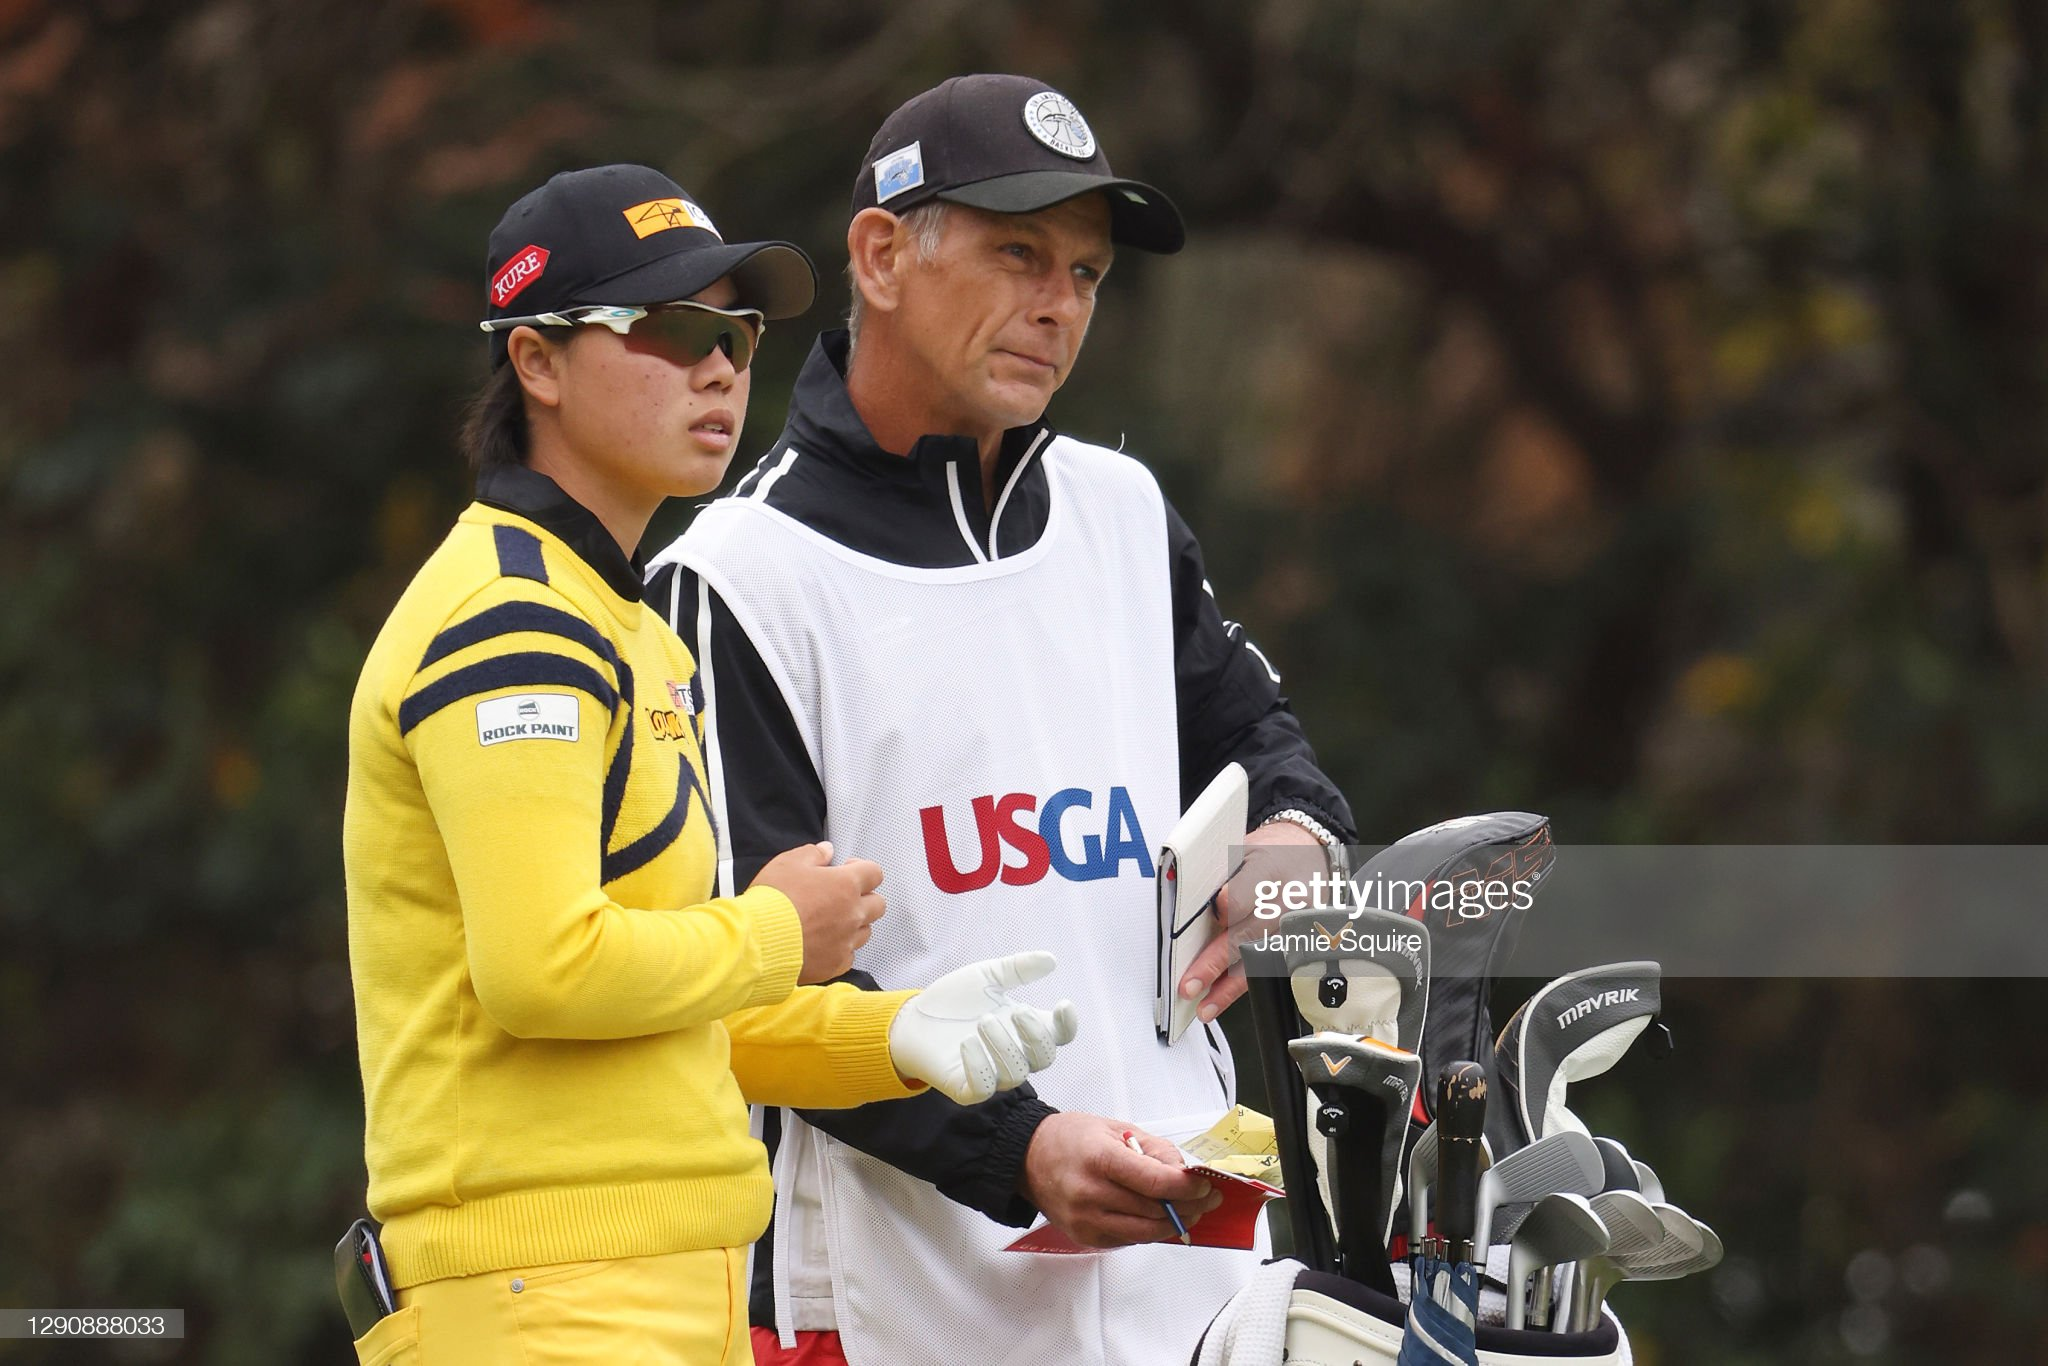 https://media.gettyimages.com/photos/yuka-saso-of-the-philippines-talks-with-her-caddie-lionel-matichuk-on-picture-id1290888033?s=2048x2048